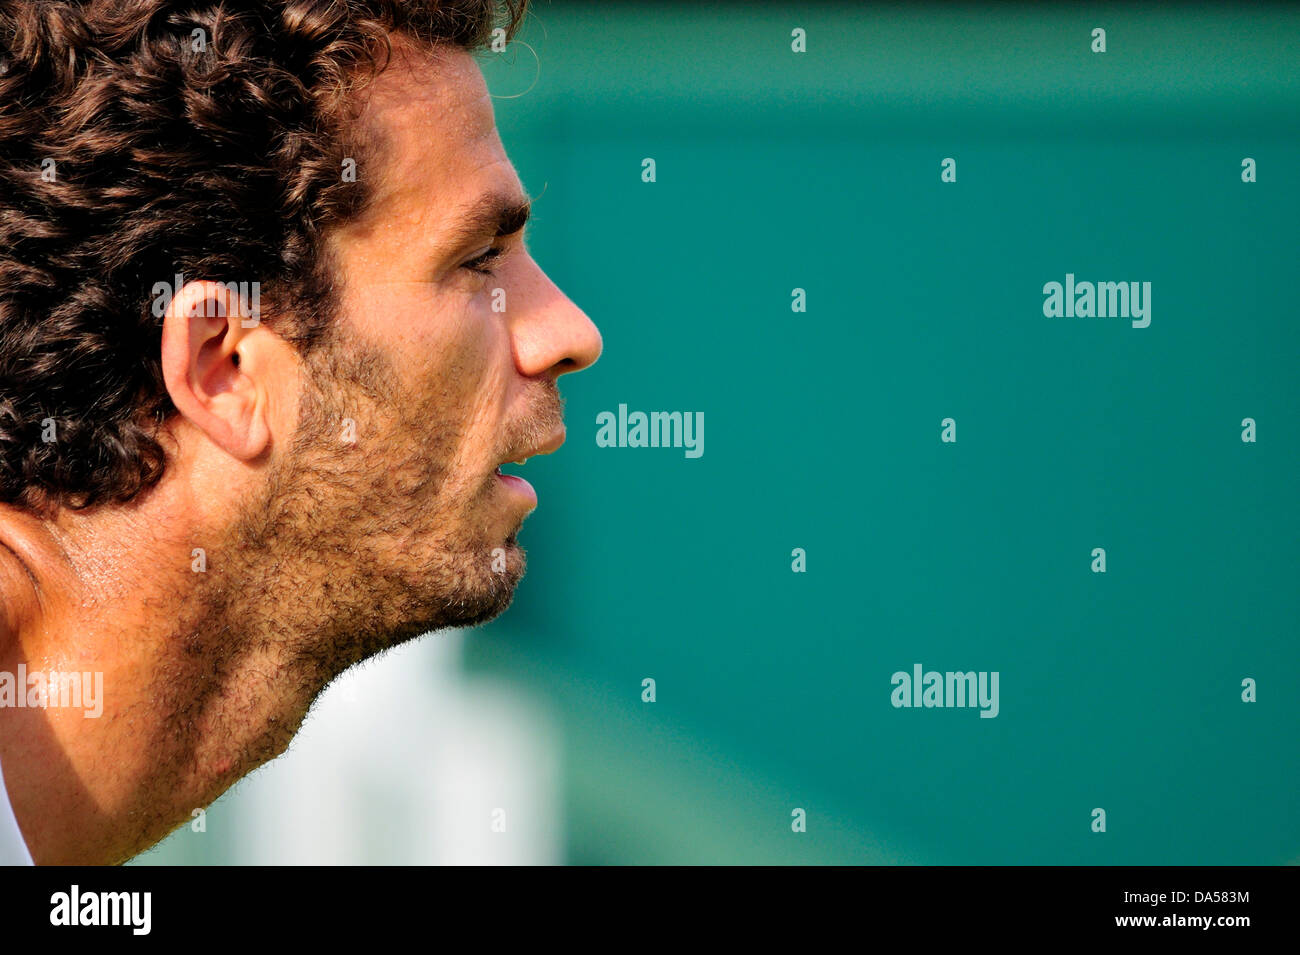 Jean-Julien Royer (France) at Wimbledon 2013 - Stock Image